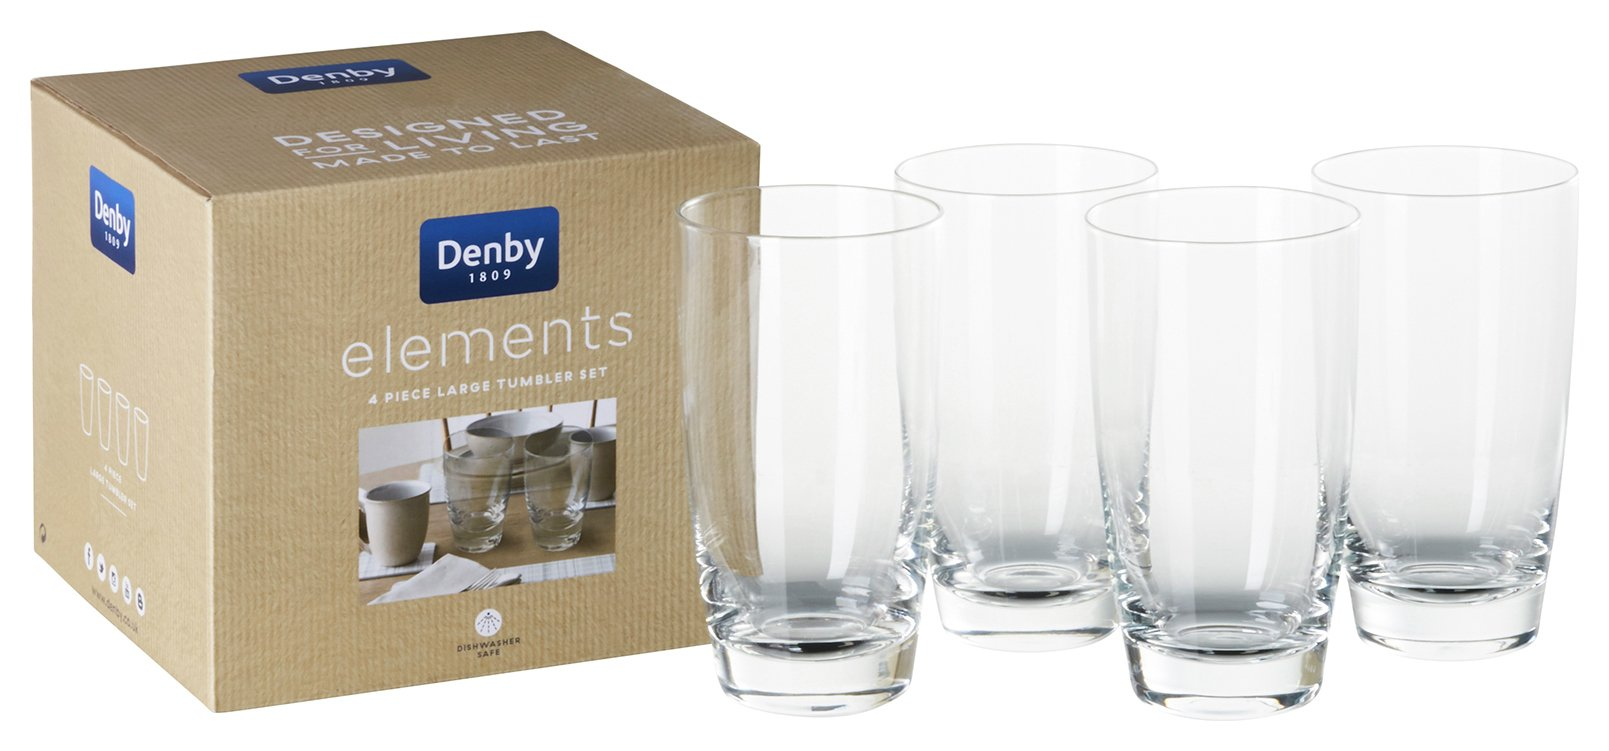 Image of Denby Elements Set of 4 Tumbler Glasses